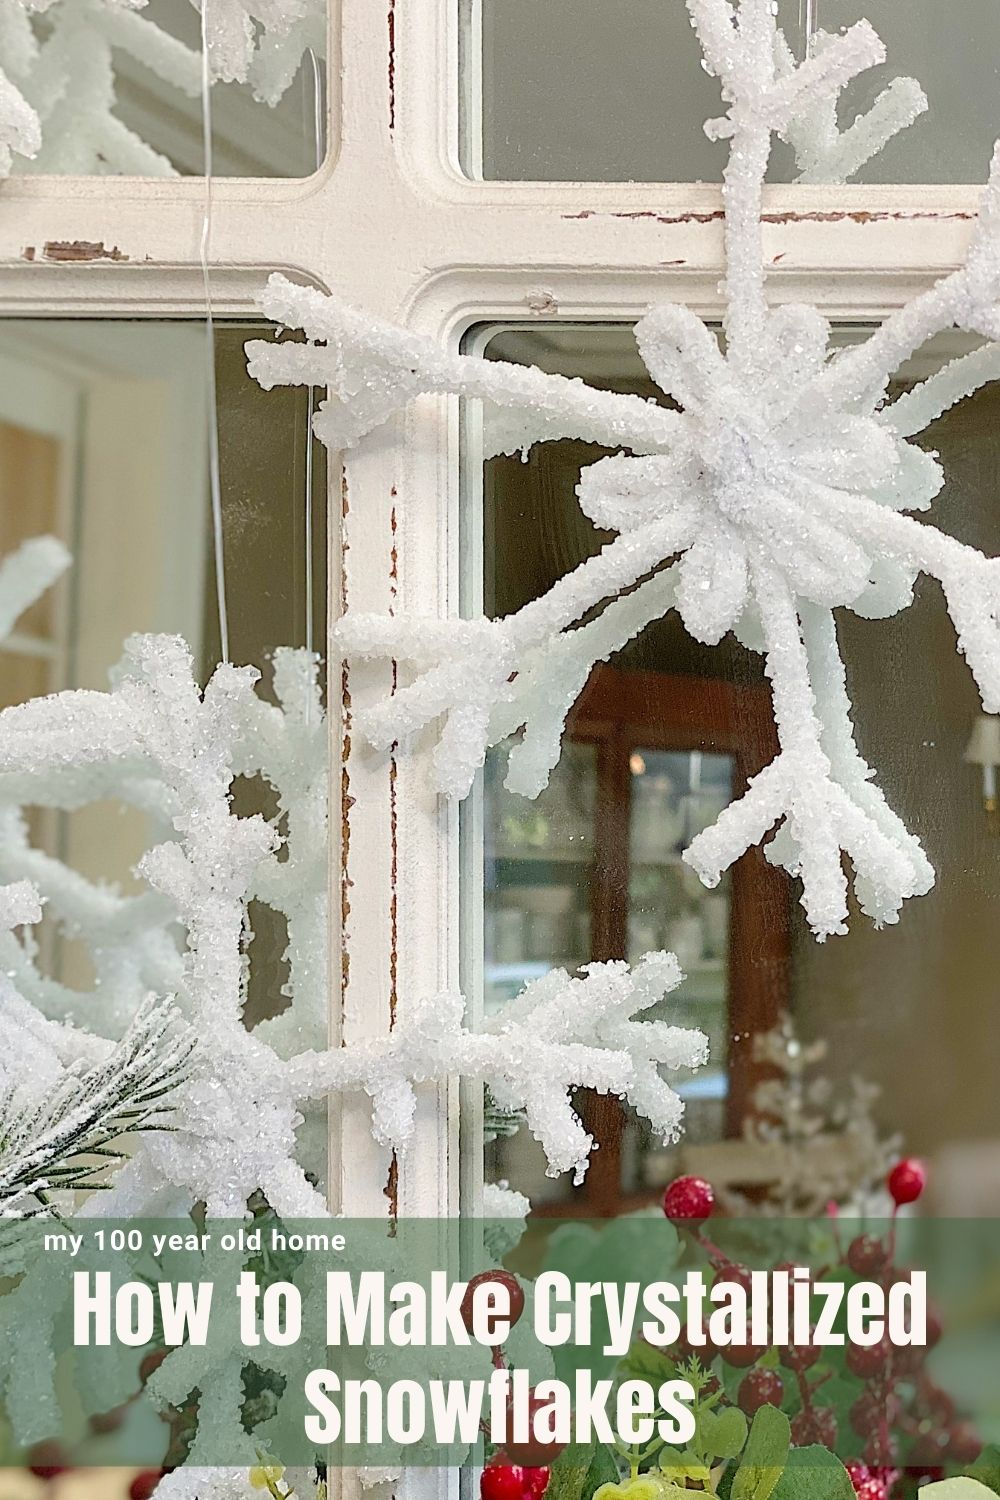 Welcome To Ten Days Of Christmas Crafting. Today We Are Making Handcrafted Crystal Snowflakes. Aren't they amazing?